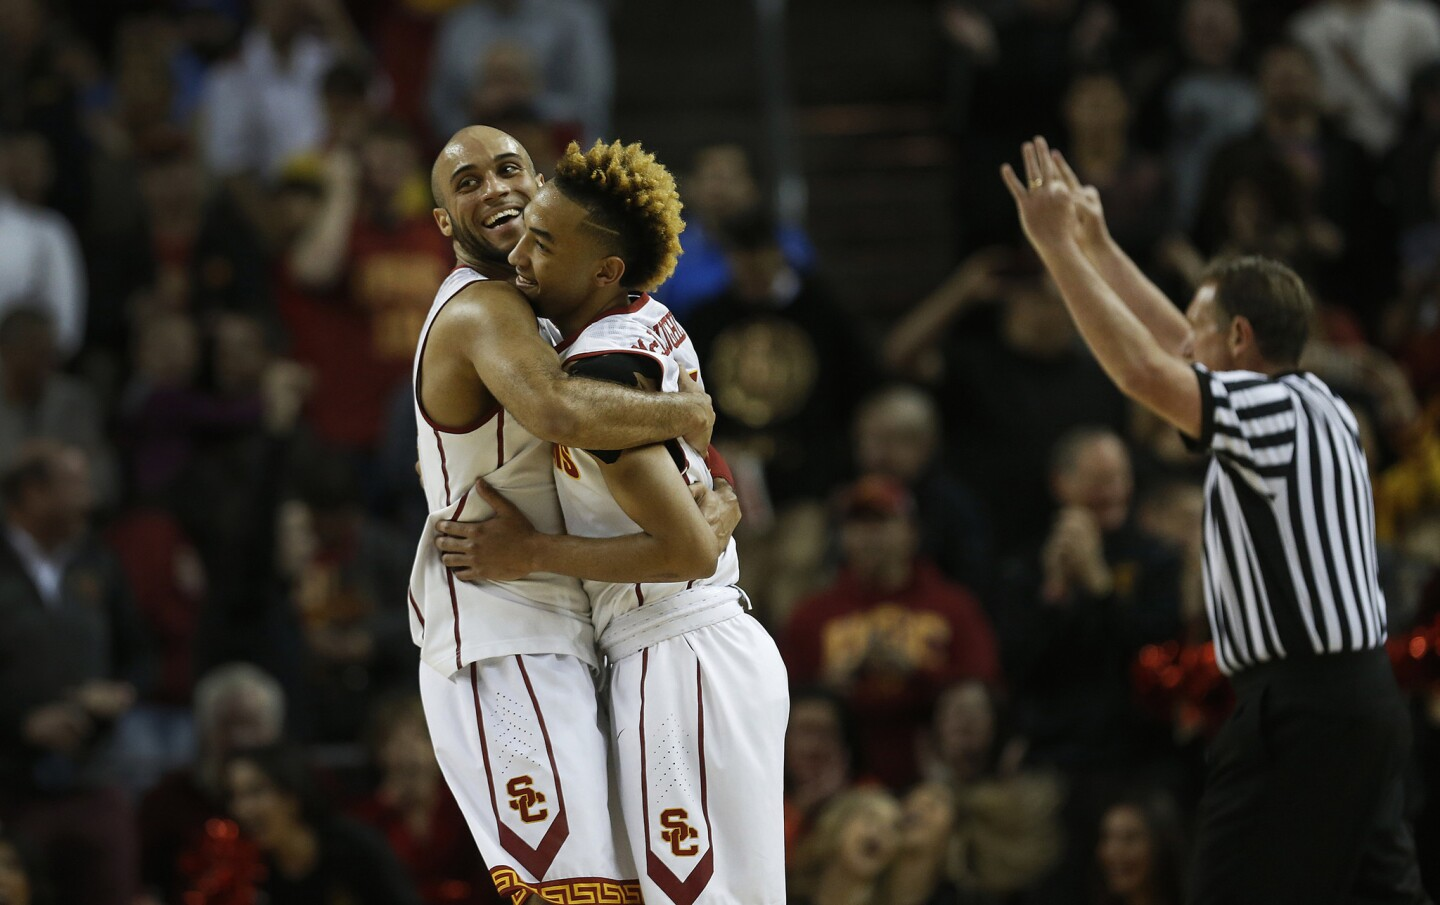 Julian Jacobs, Jordan McLaughlin